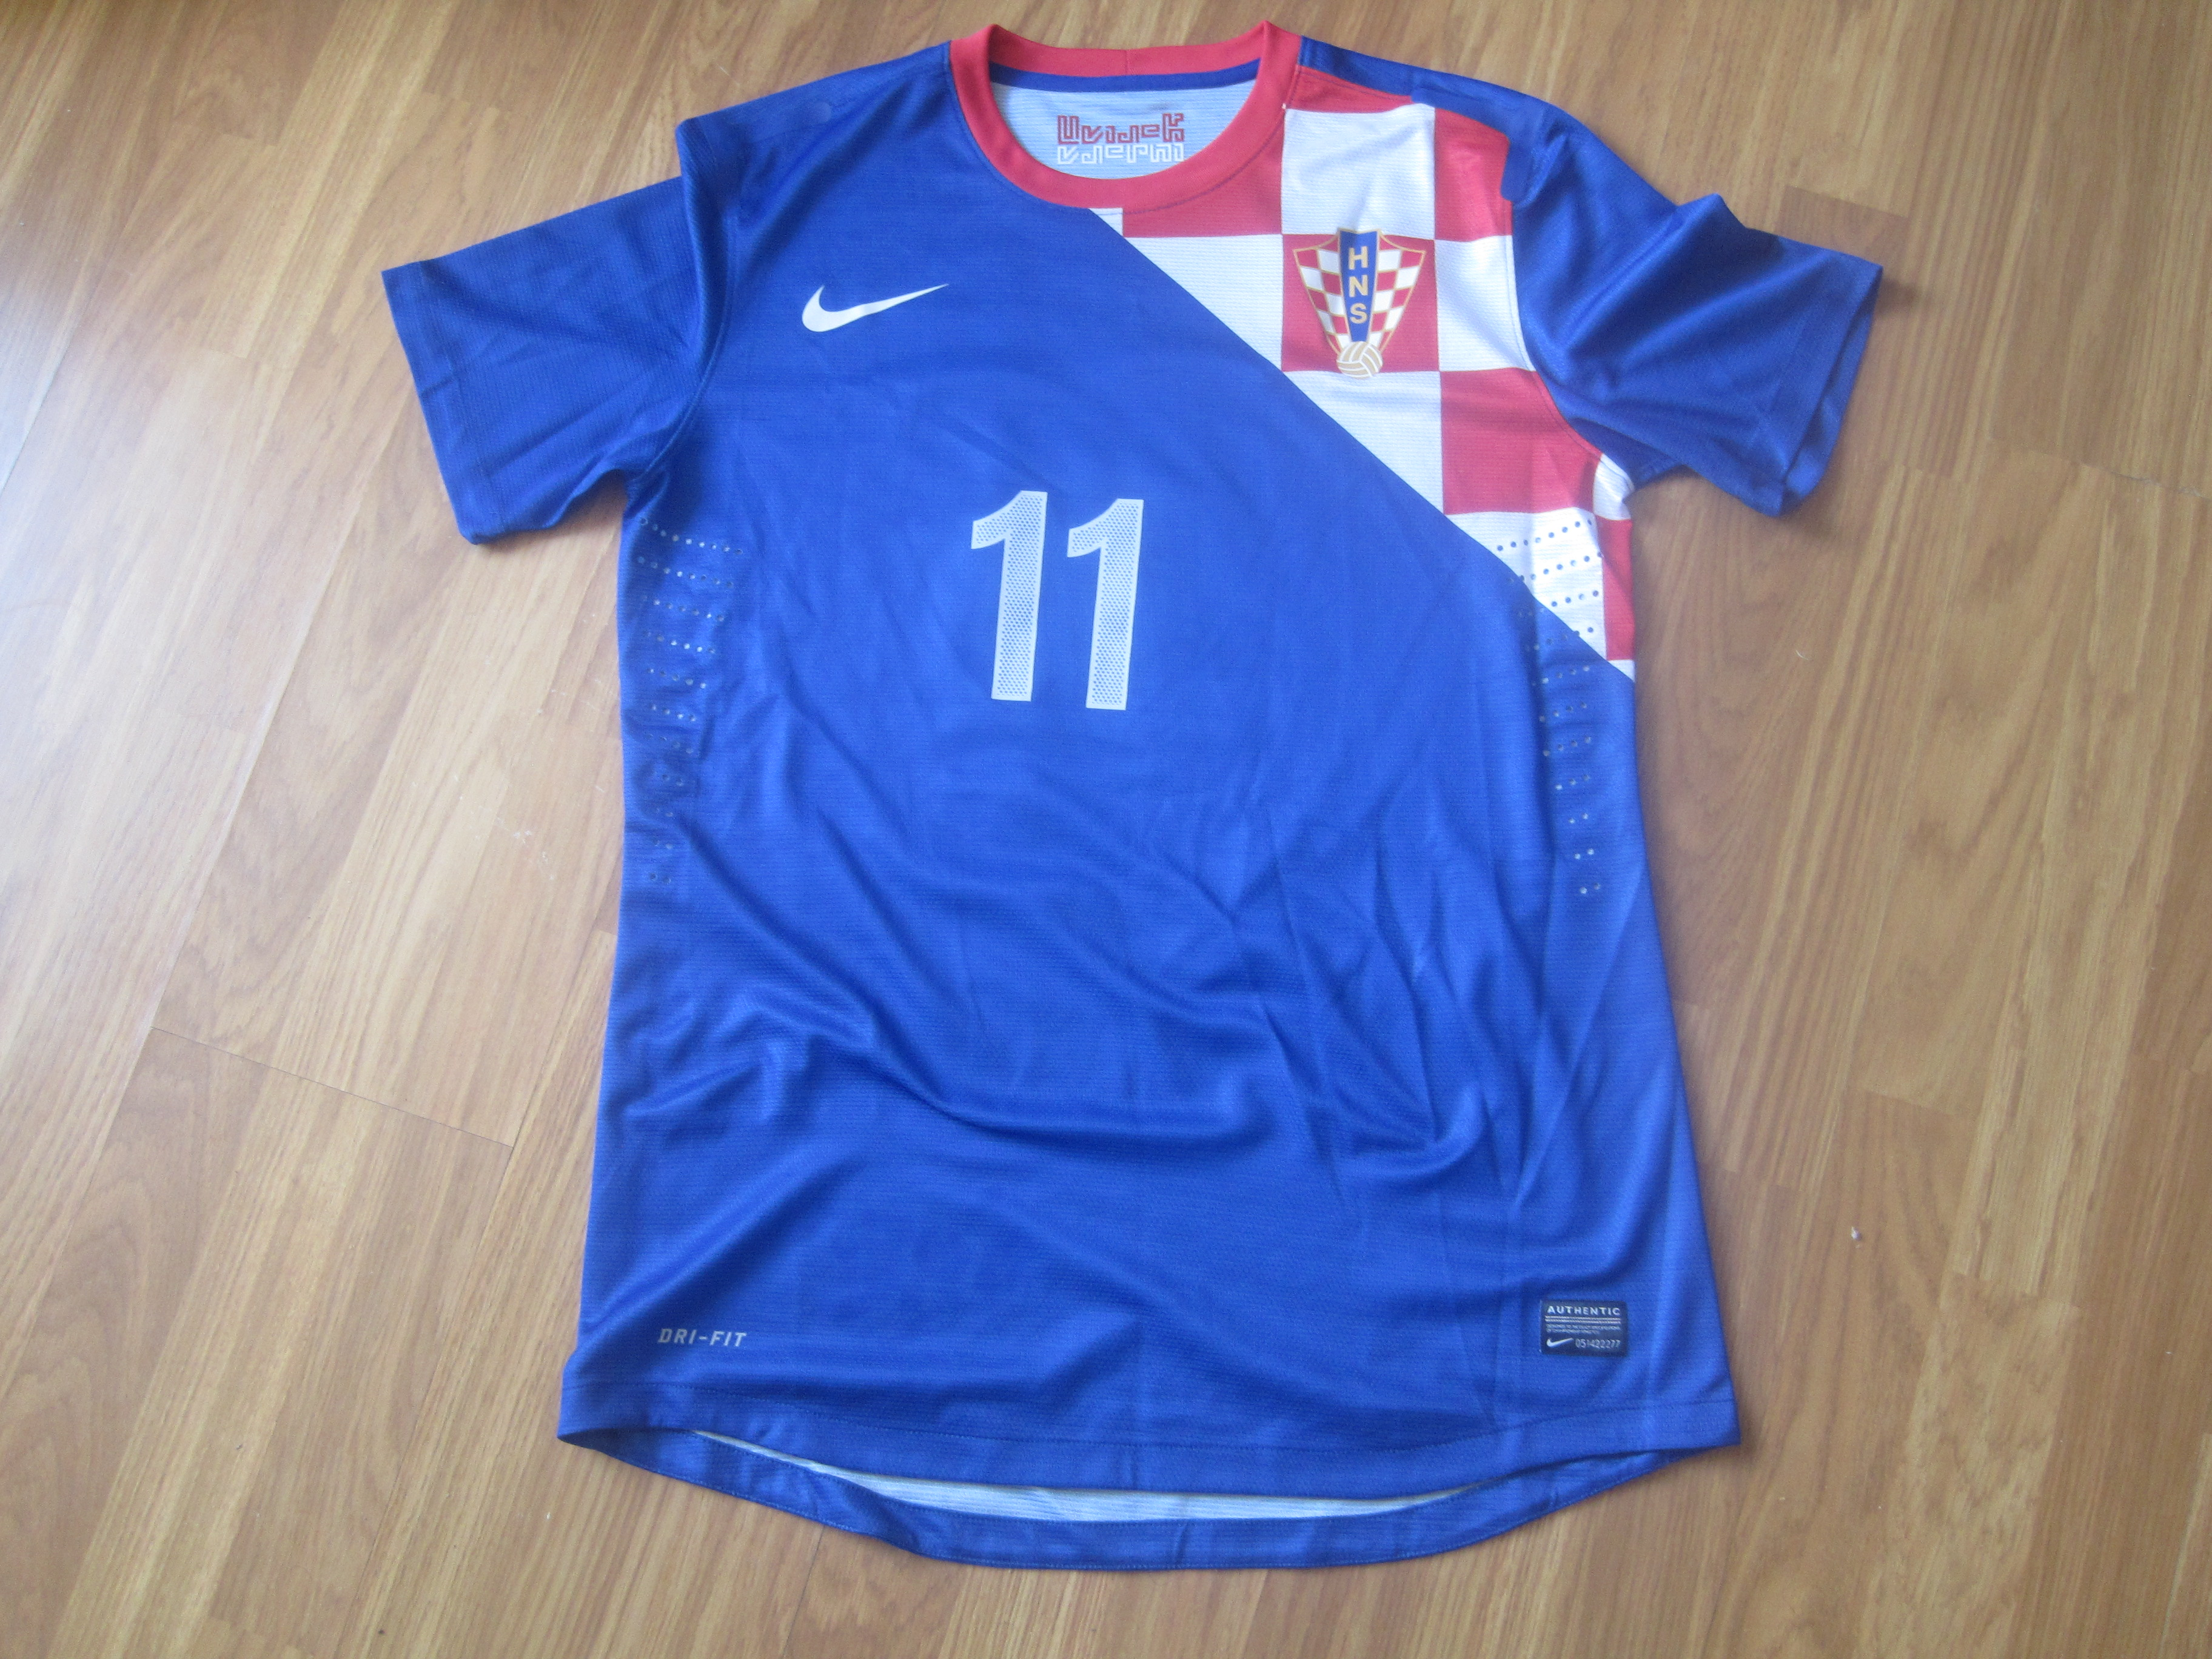 buy popular c0c9d 6365a Petric's news jersey (Croatia)